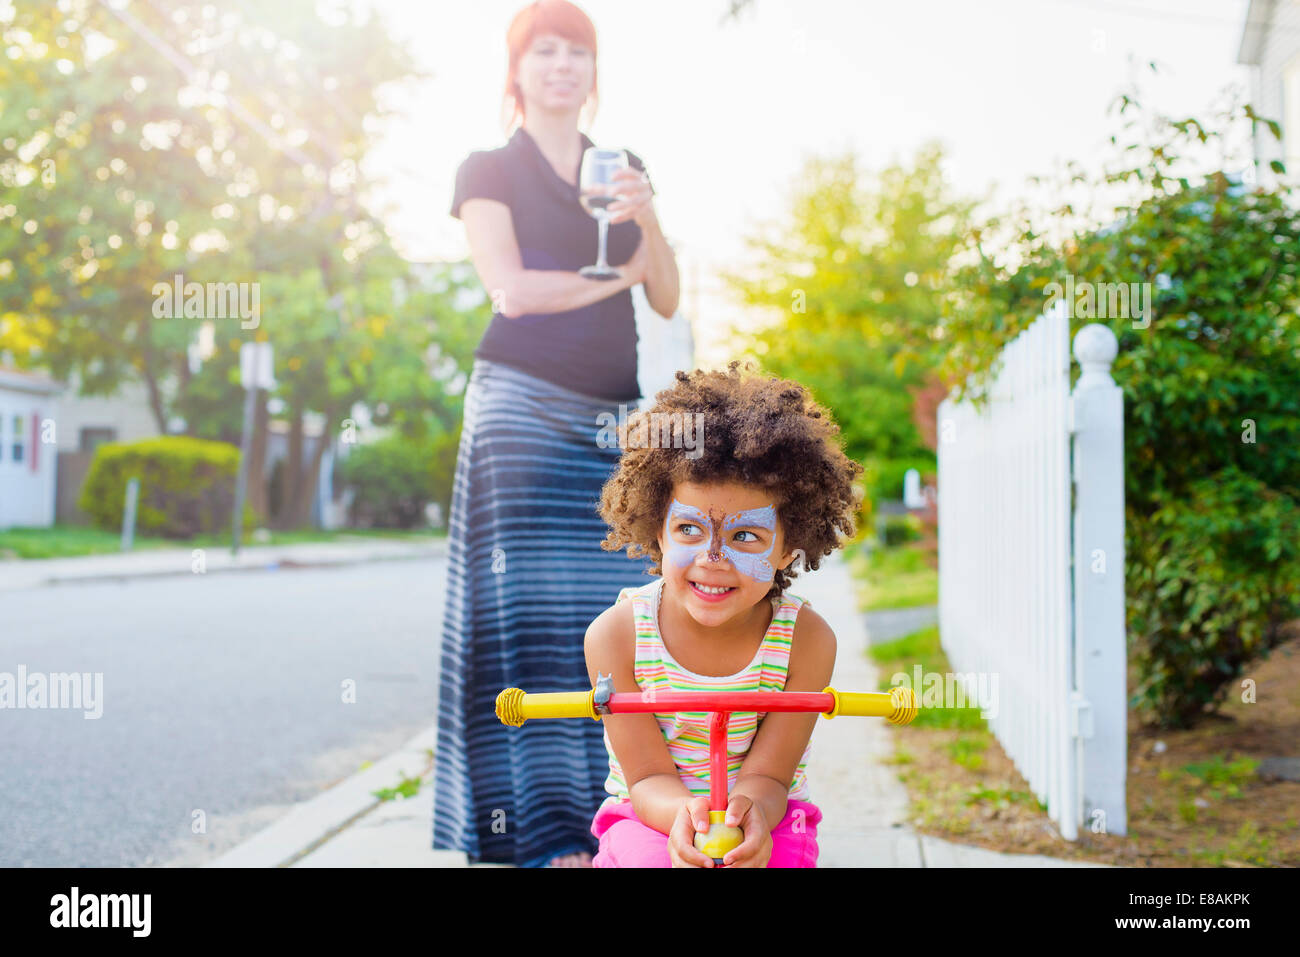 Girl with painted face crouching on scooter on suburban street - Stock Image